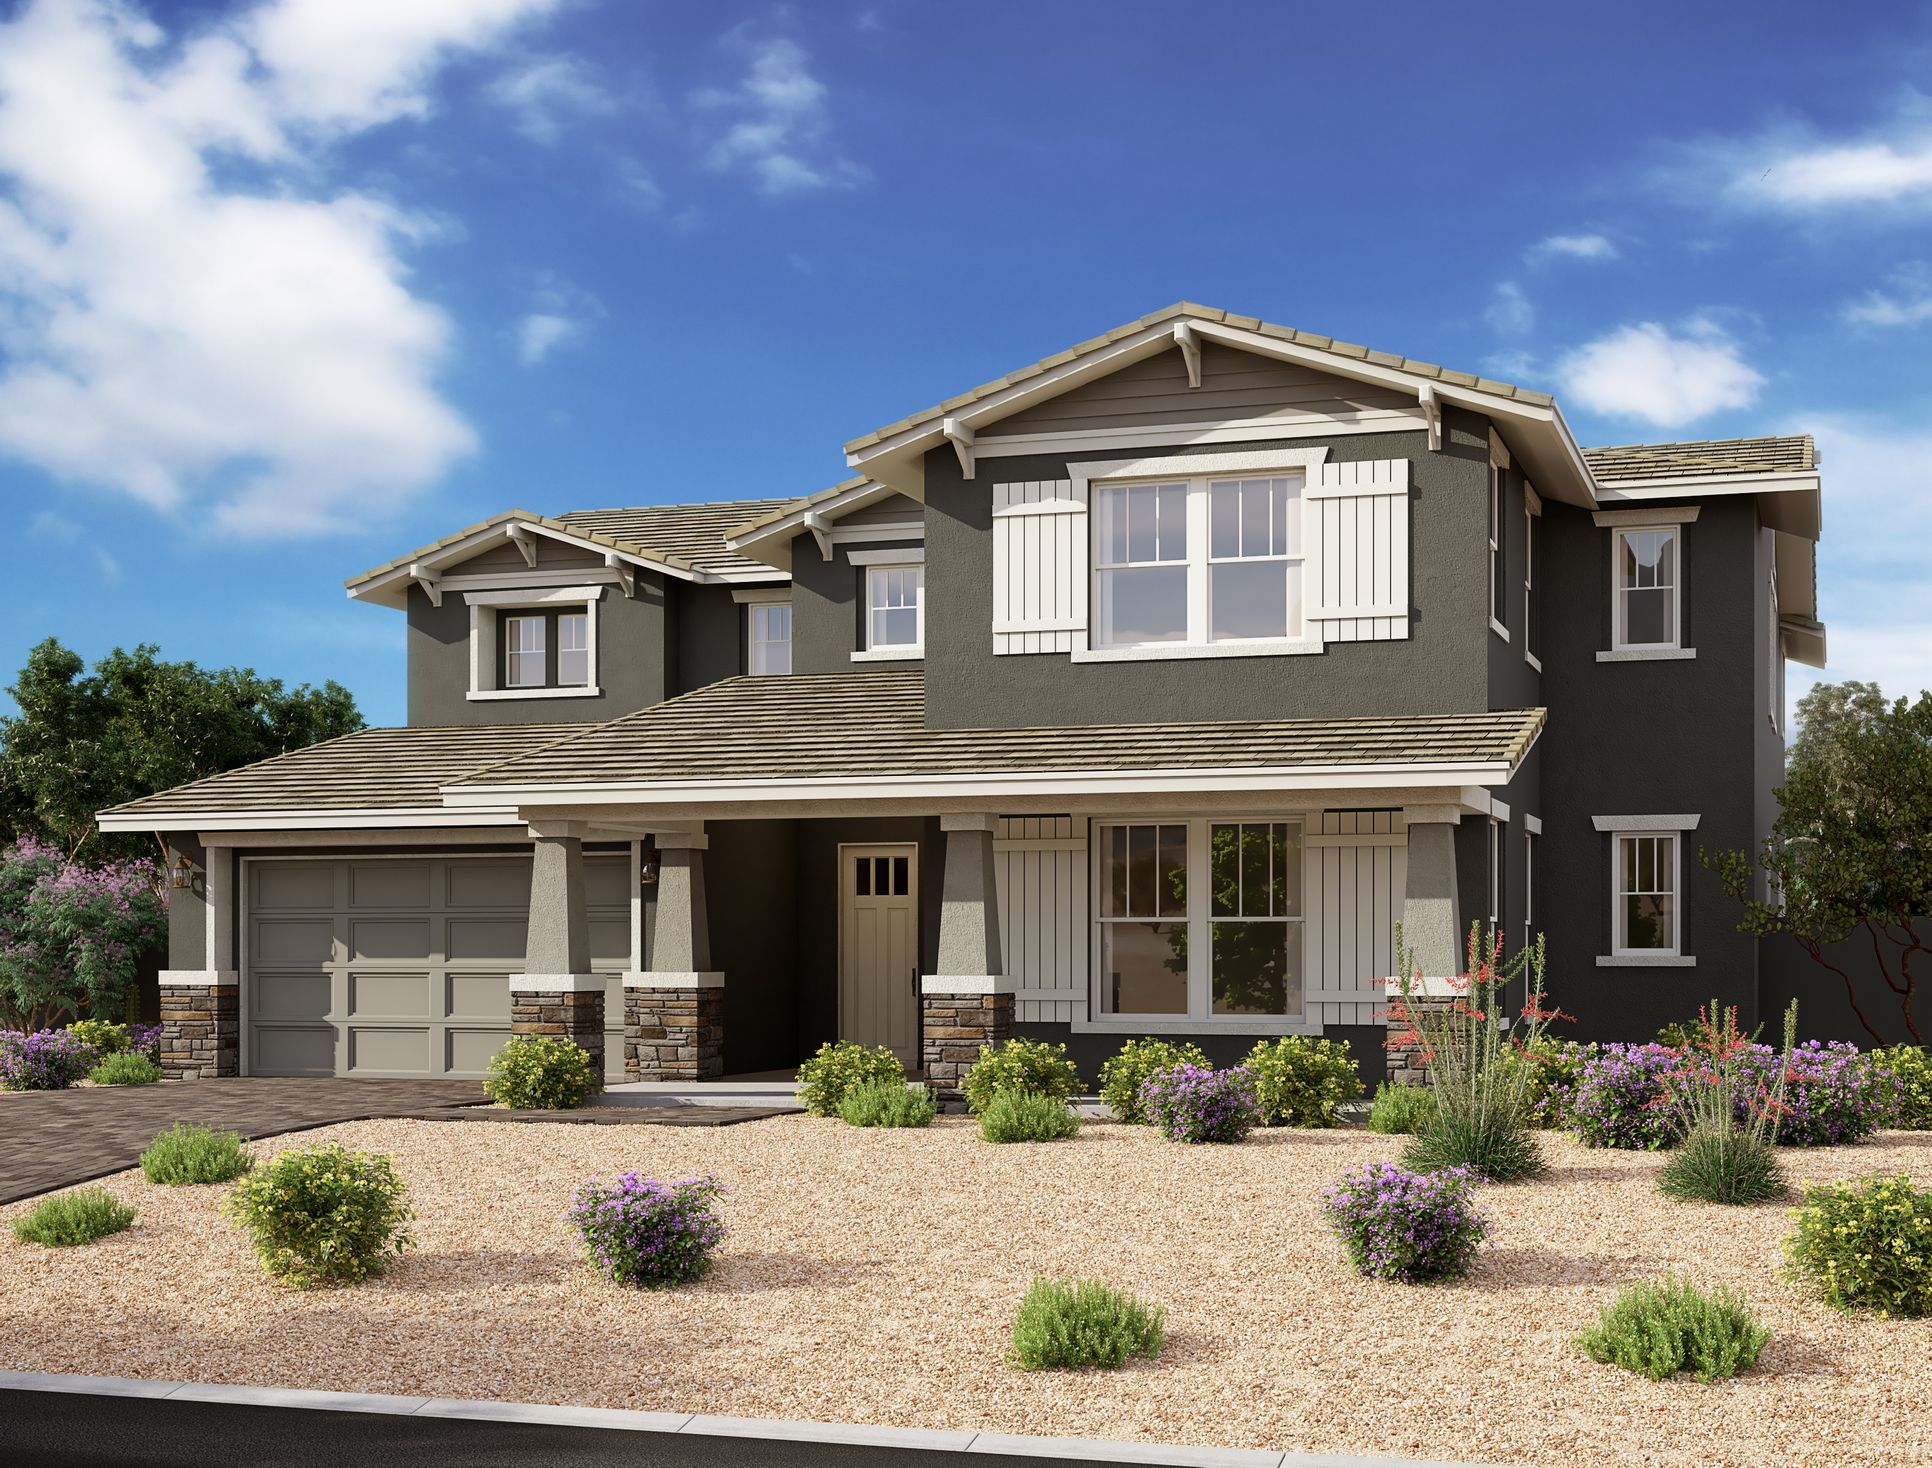 Exterior:Estates at Eastmark - Spruce Elevation Image 1